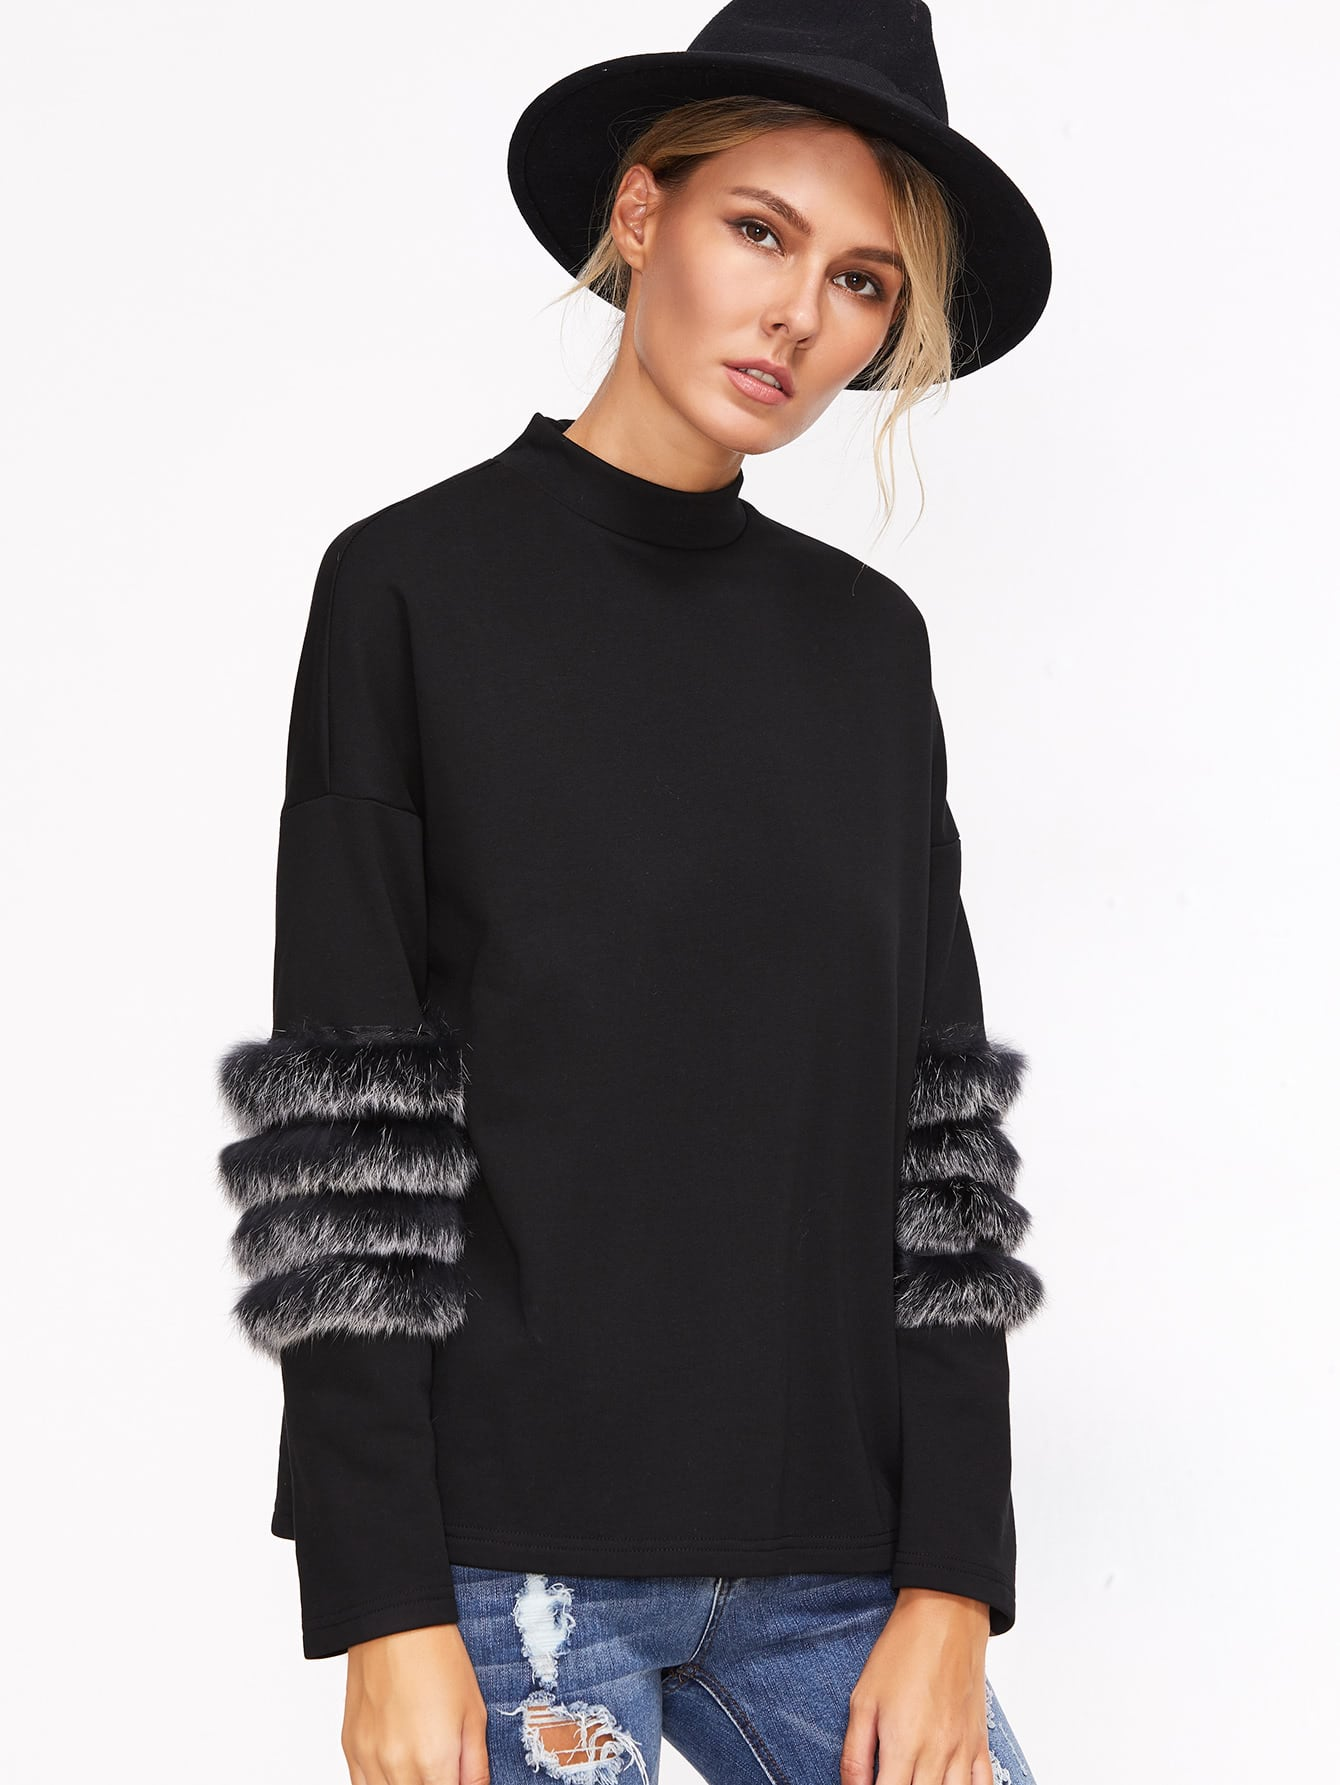 Black Drop Shoulder Striped Fur Trim T-shirt -SheIn(Sheinside)